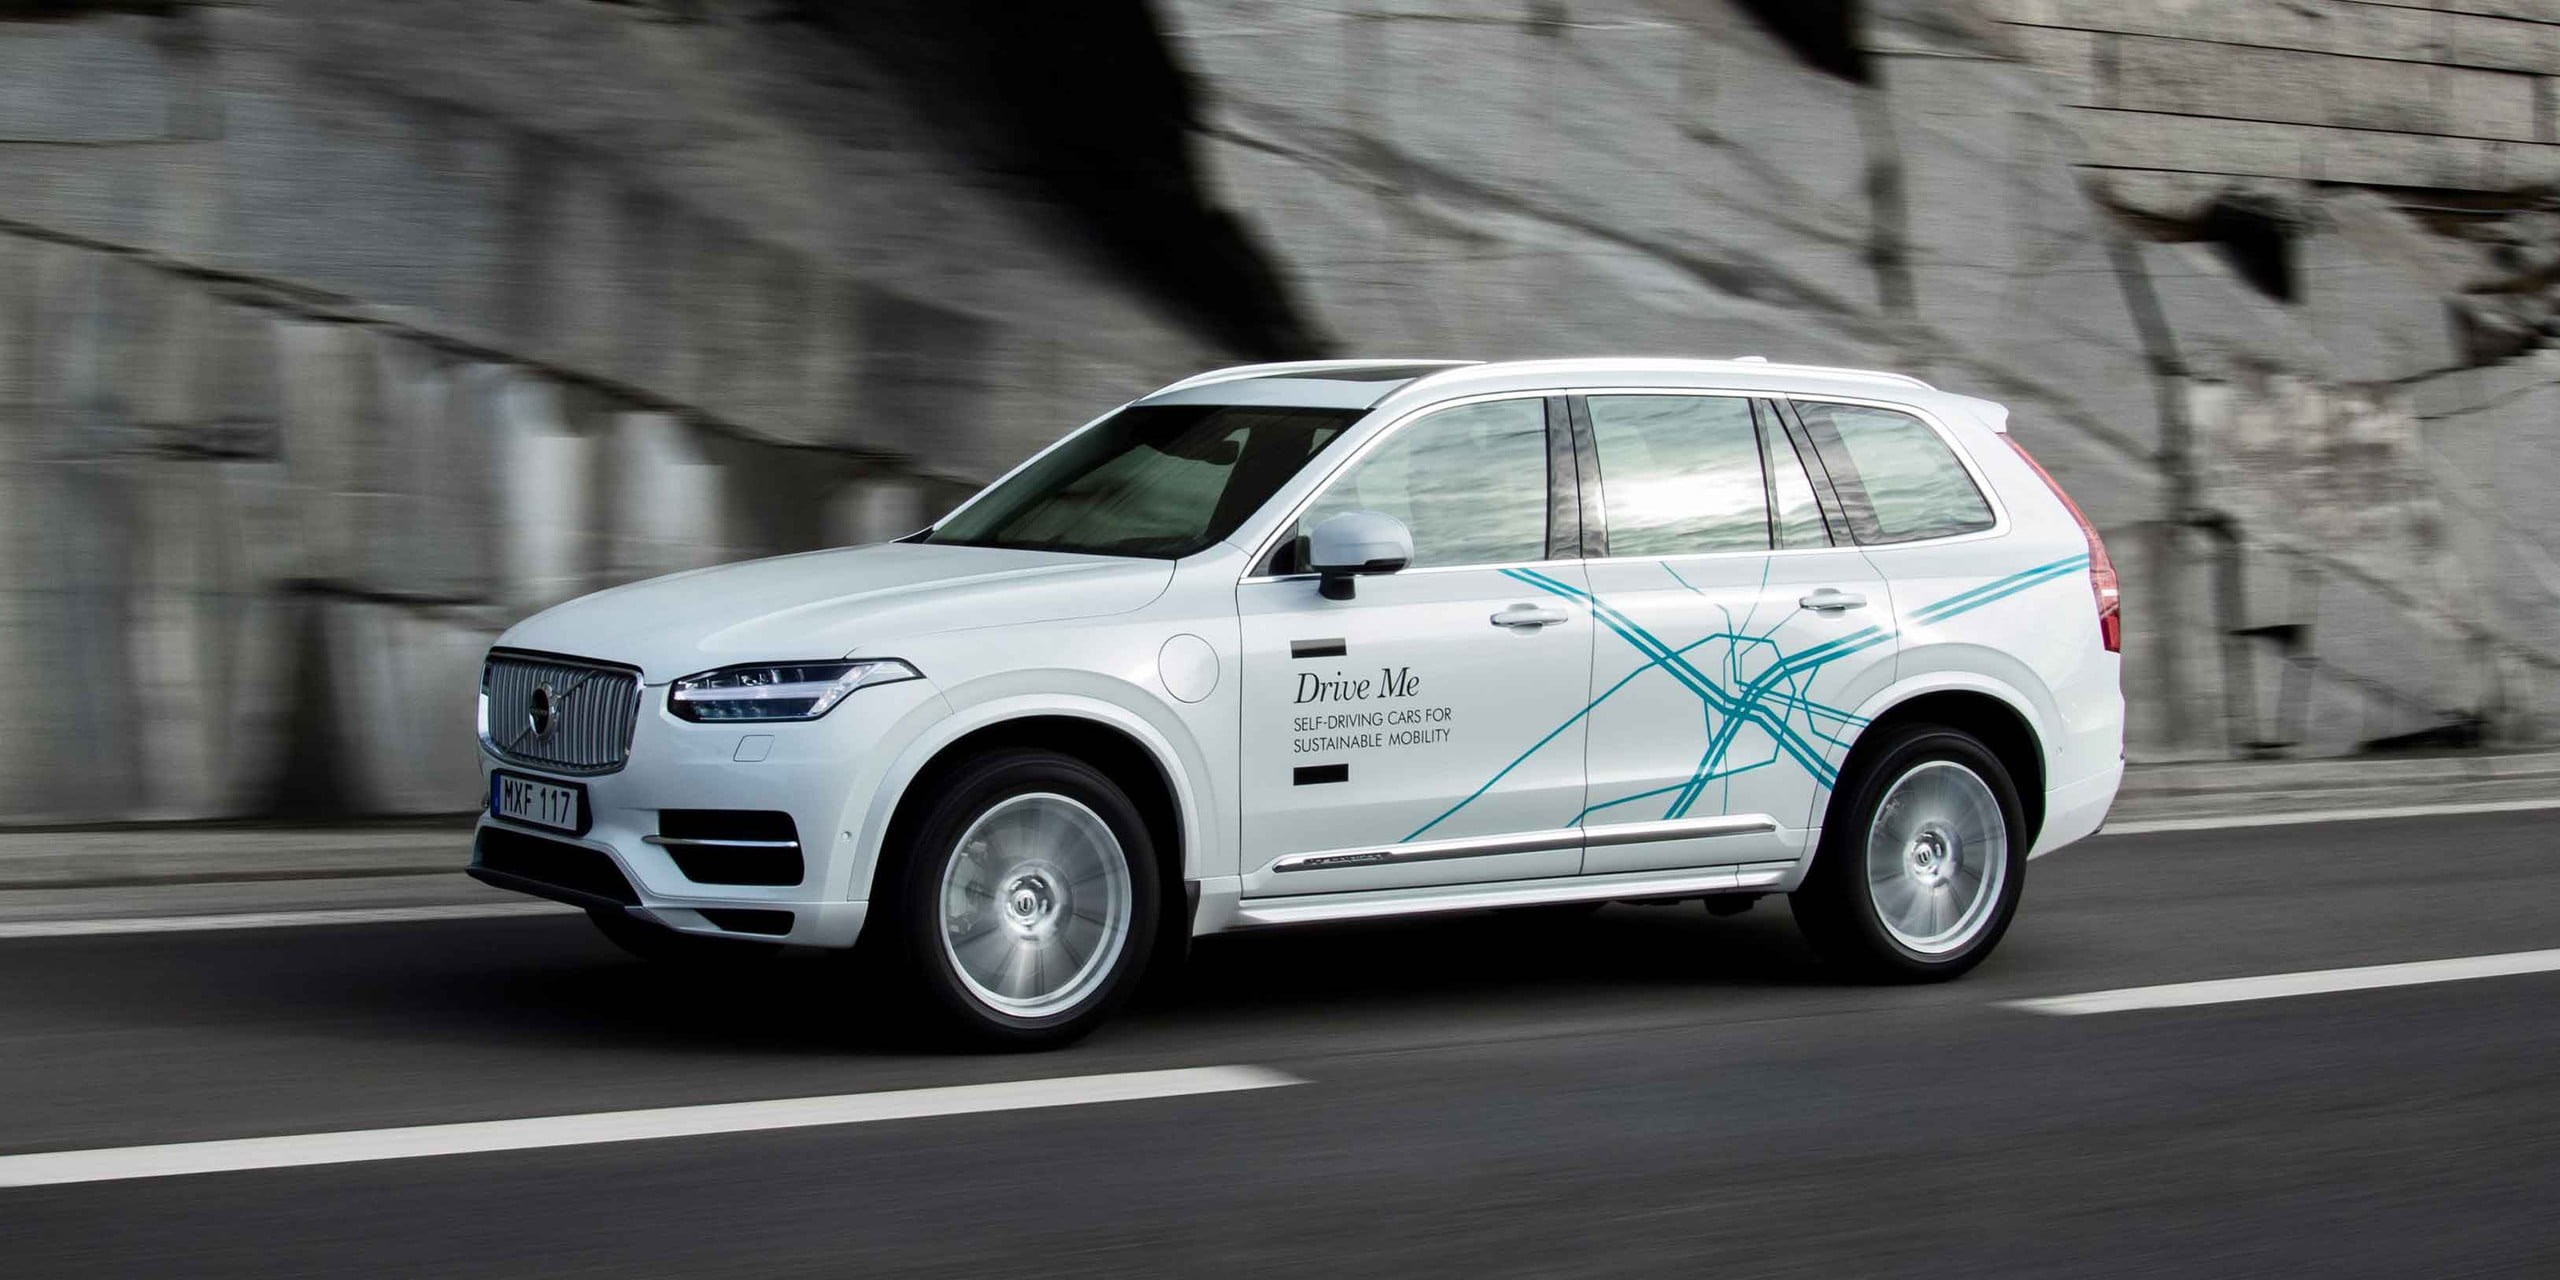 """DT10 Cars - Volvo XC90 """"Drive Me"""" self-driving car"""